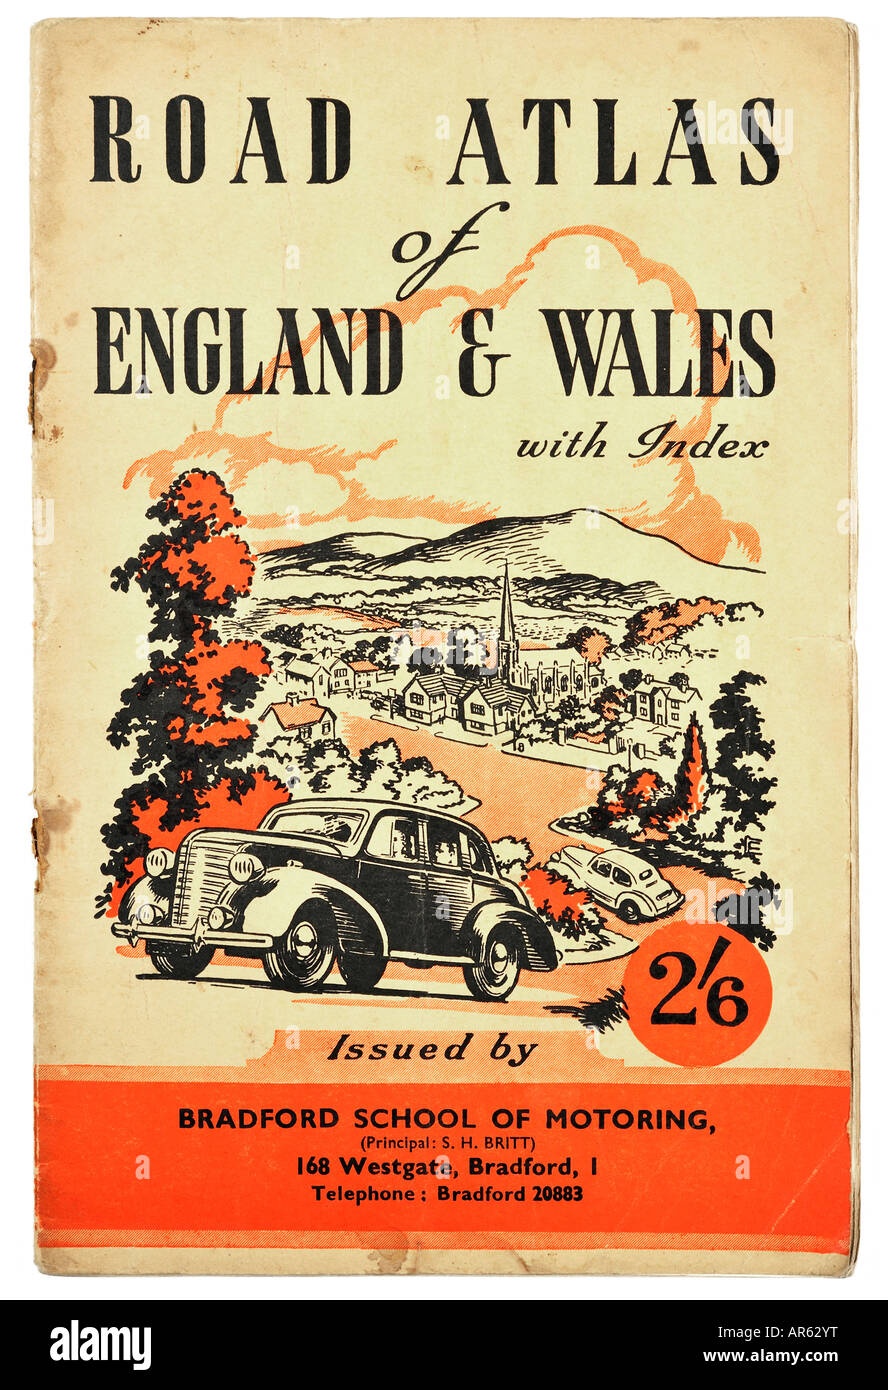 Old vintage 1950s Road Atlas of England & Wales For Editorial Use Only - Stock Image